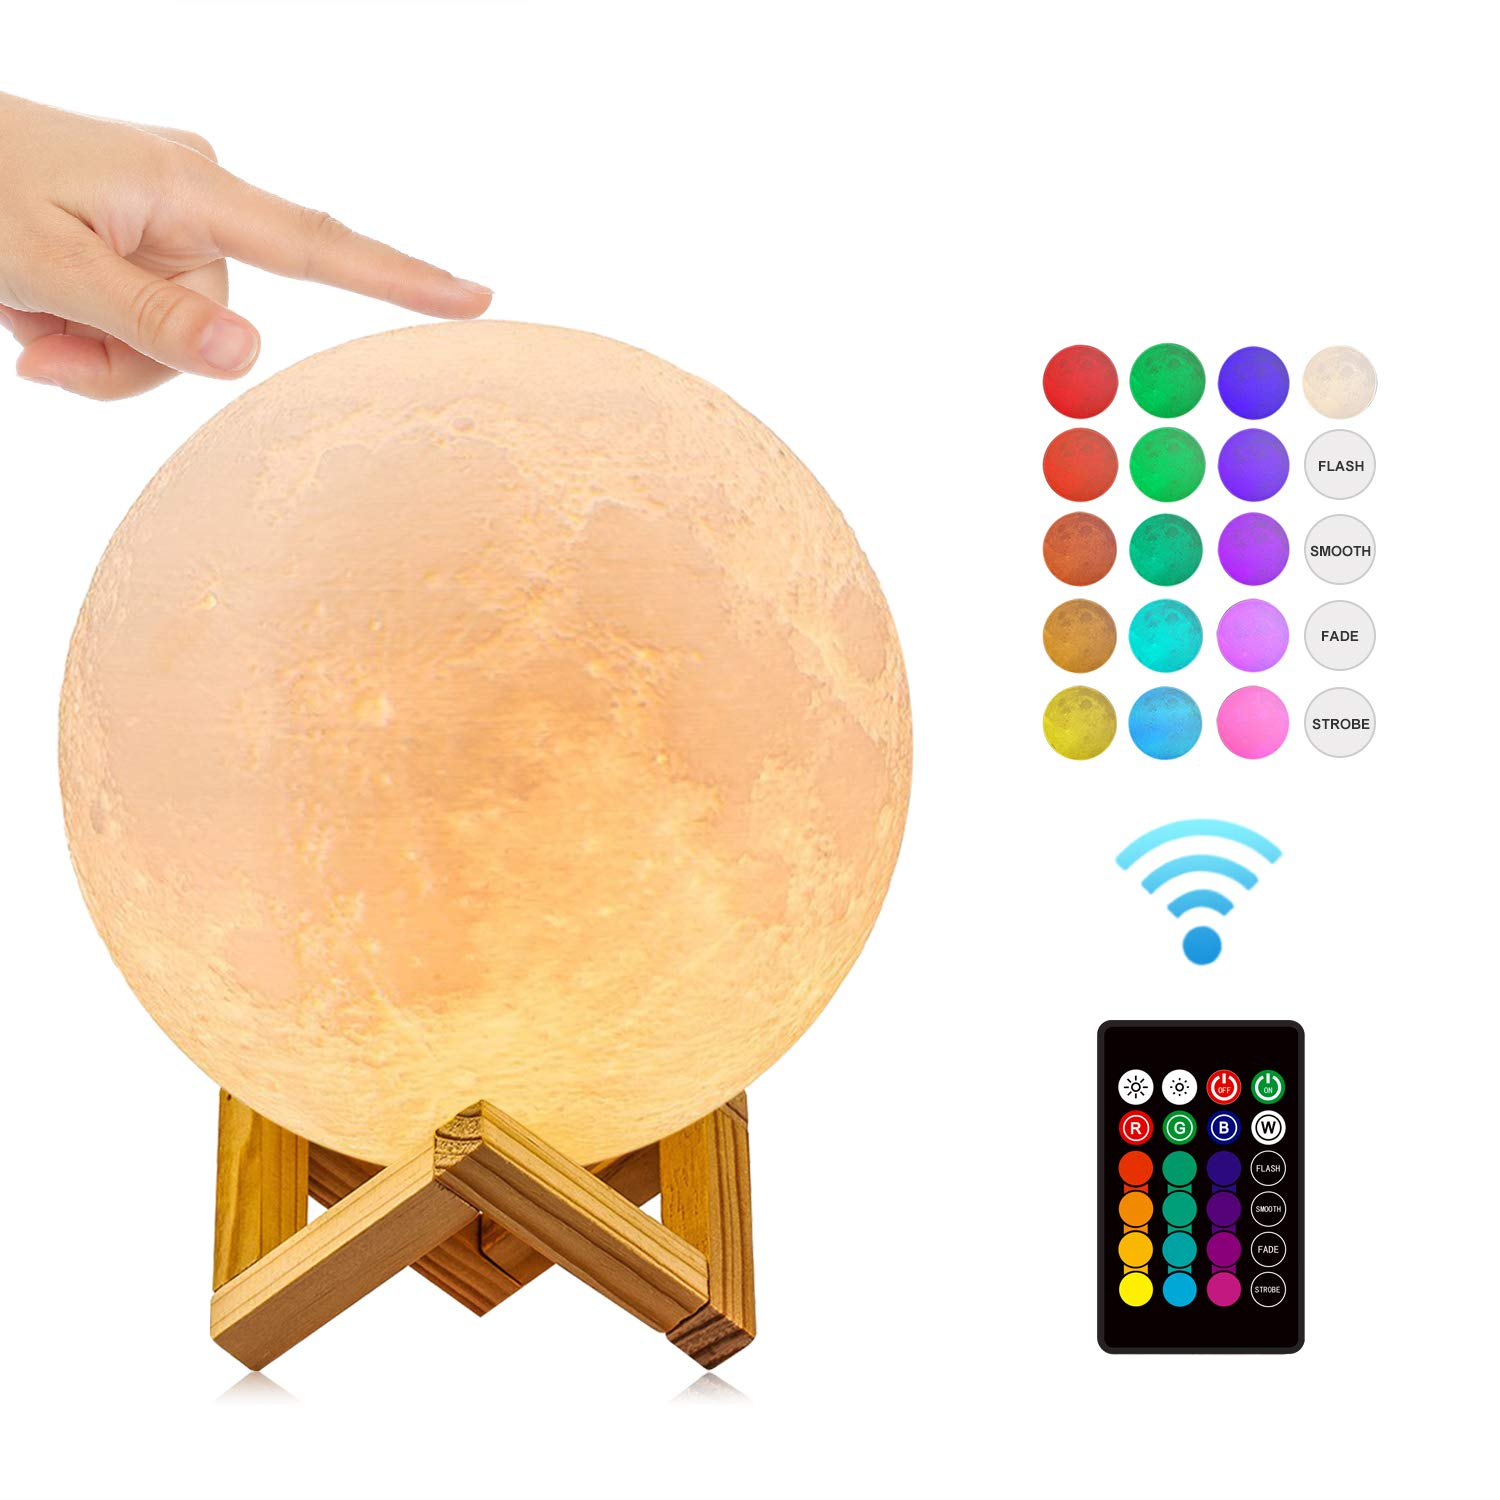 Moon Lamp GDPETS Night Light Kids Gift Sets 3D Printing Moon Light, Remote & Touch Control 16 Color Decorative Light Brightness Adjust Decorative Light Lamps for Baby/Kids/Family/Friends(7.1Inch)